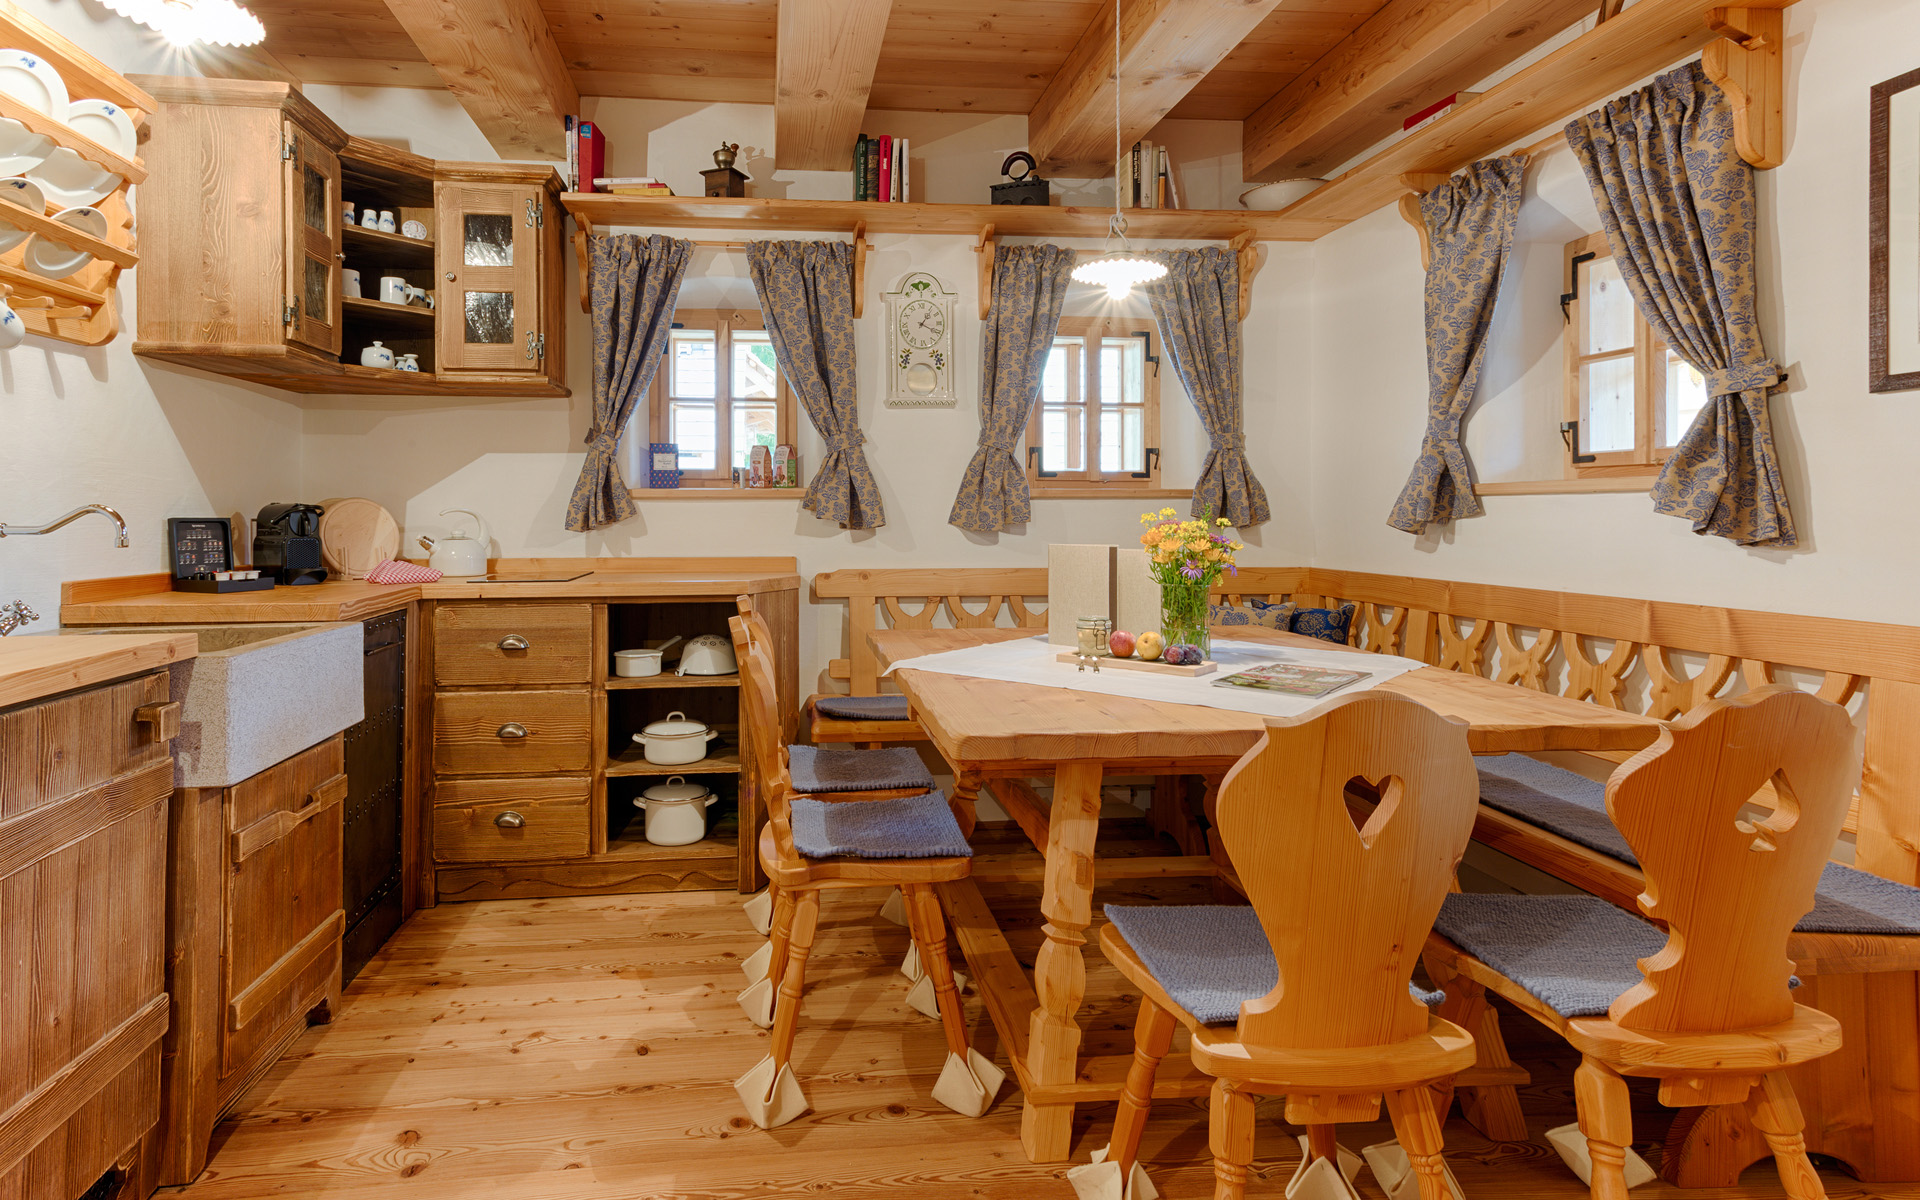 Seinerzeit-Almdorf_Cottage_Chalet-Alpenstil_Wodden-apartments_Austria_hotelska-oprema_Hotel-equipment_05